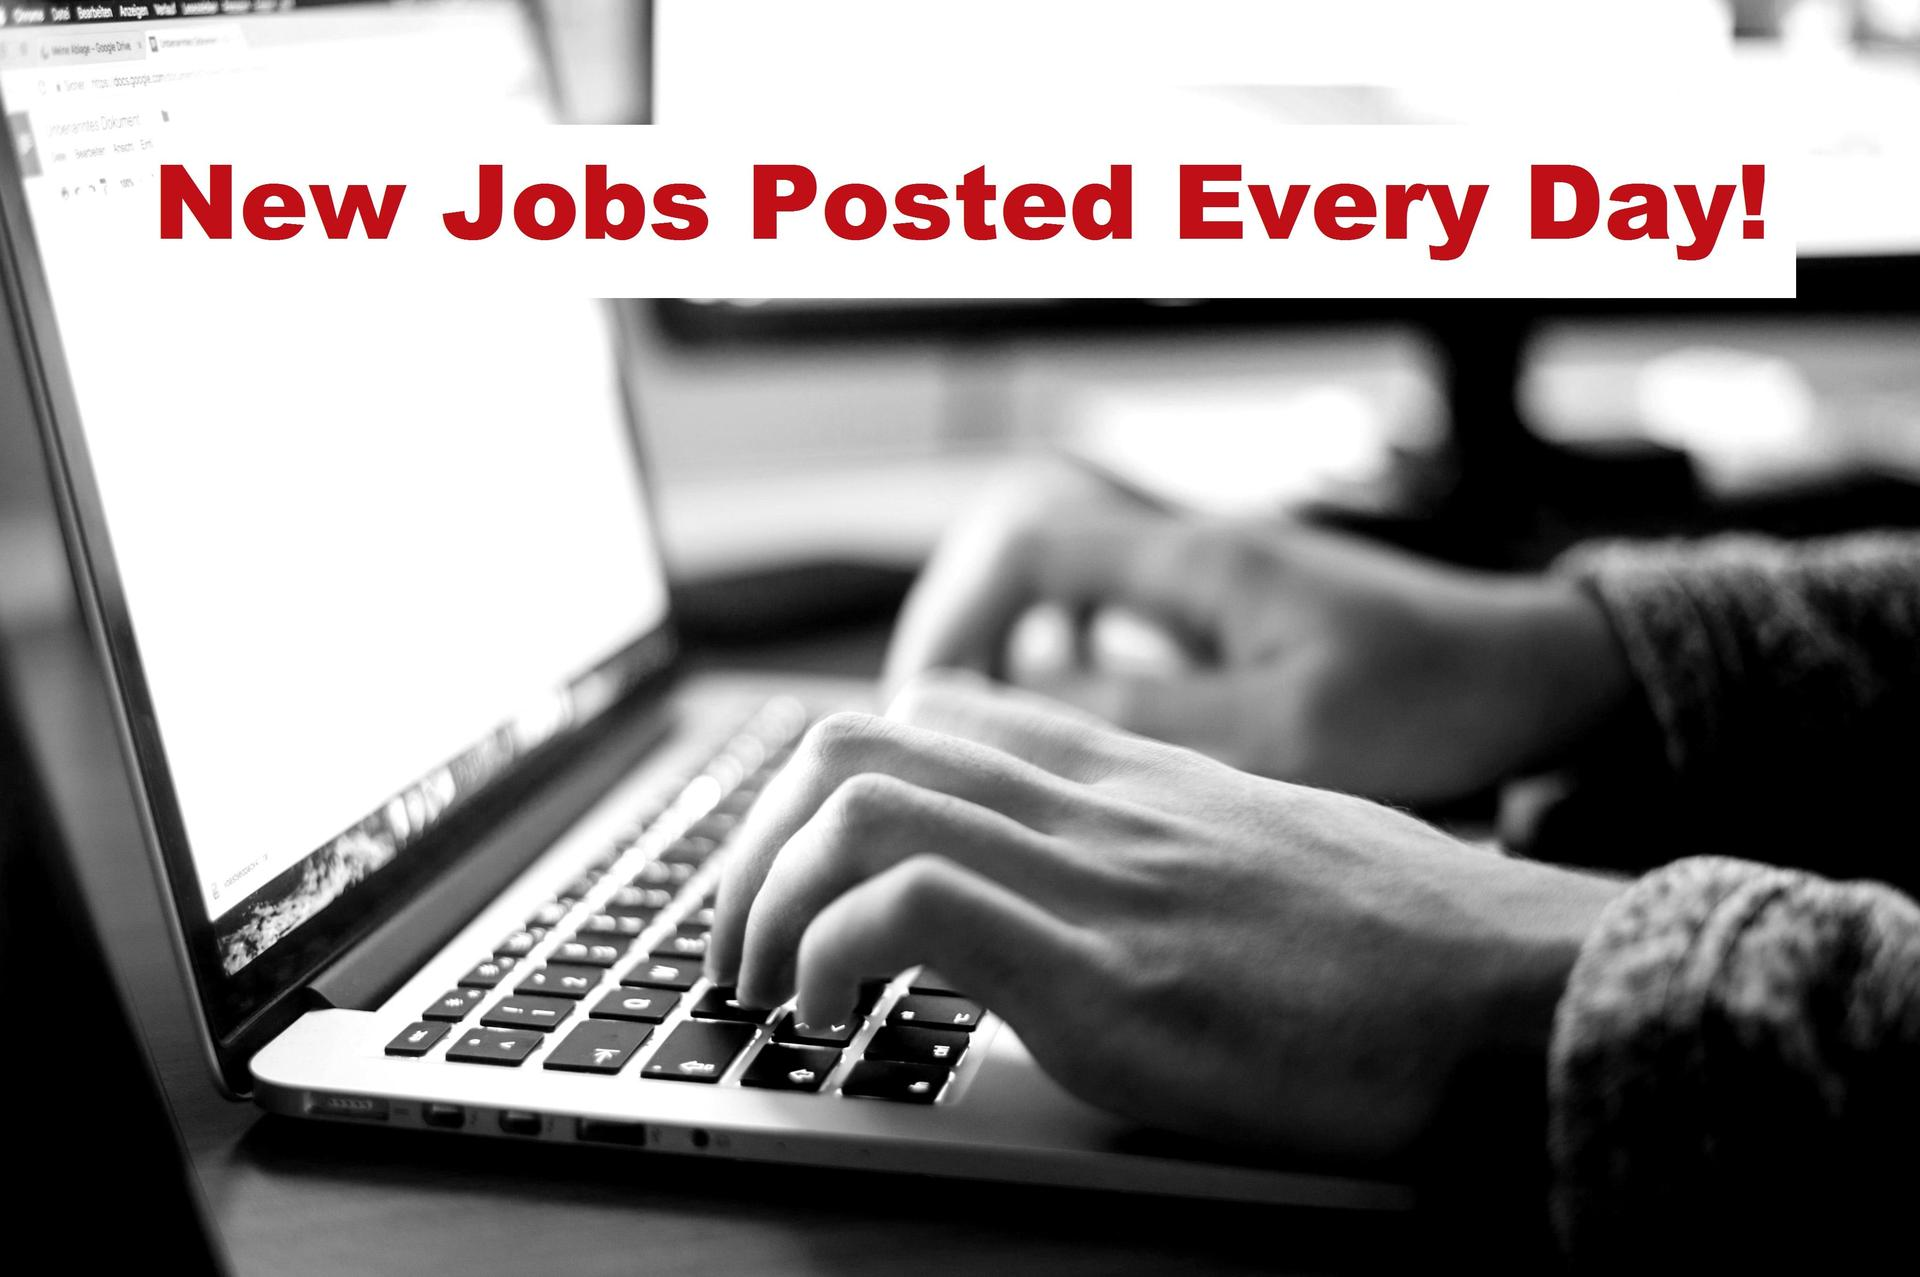 New Jobs Posted Every Day!